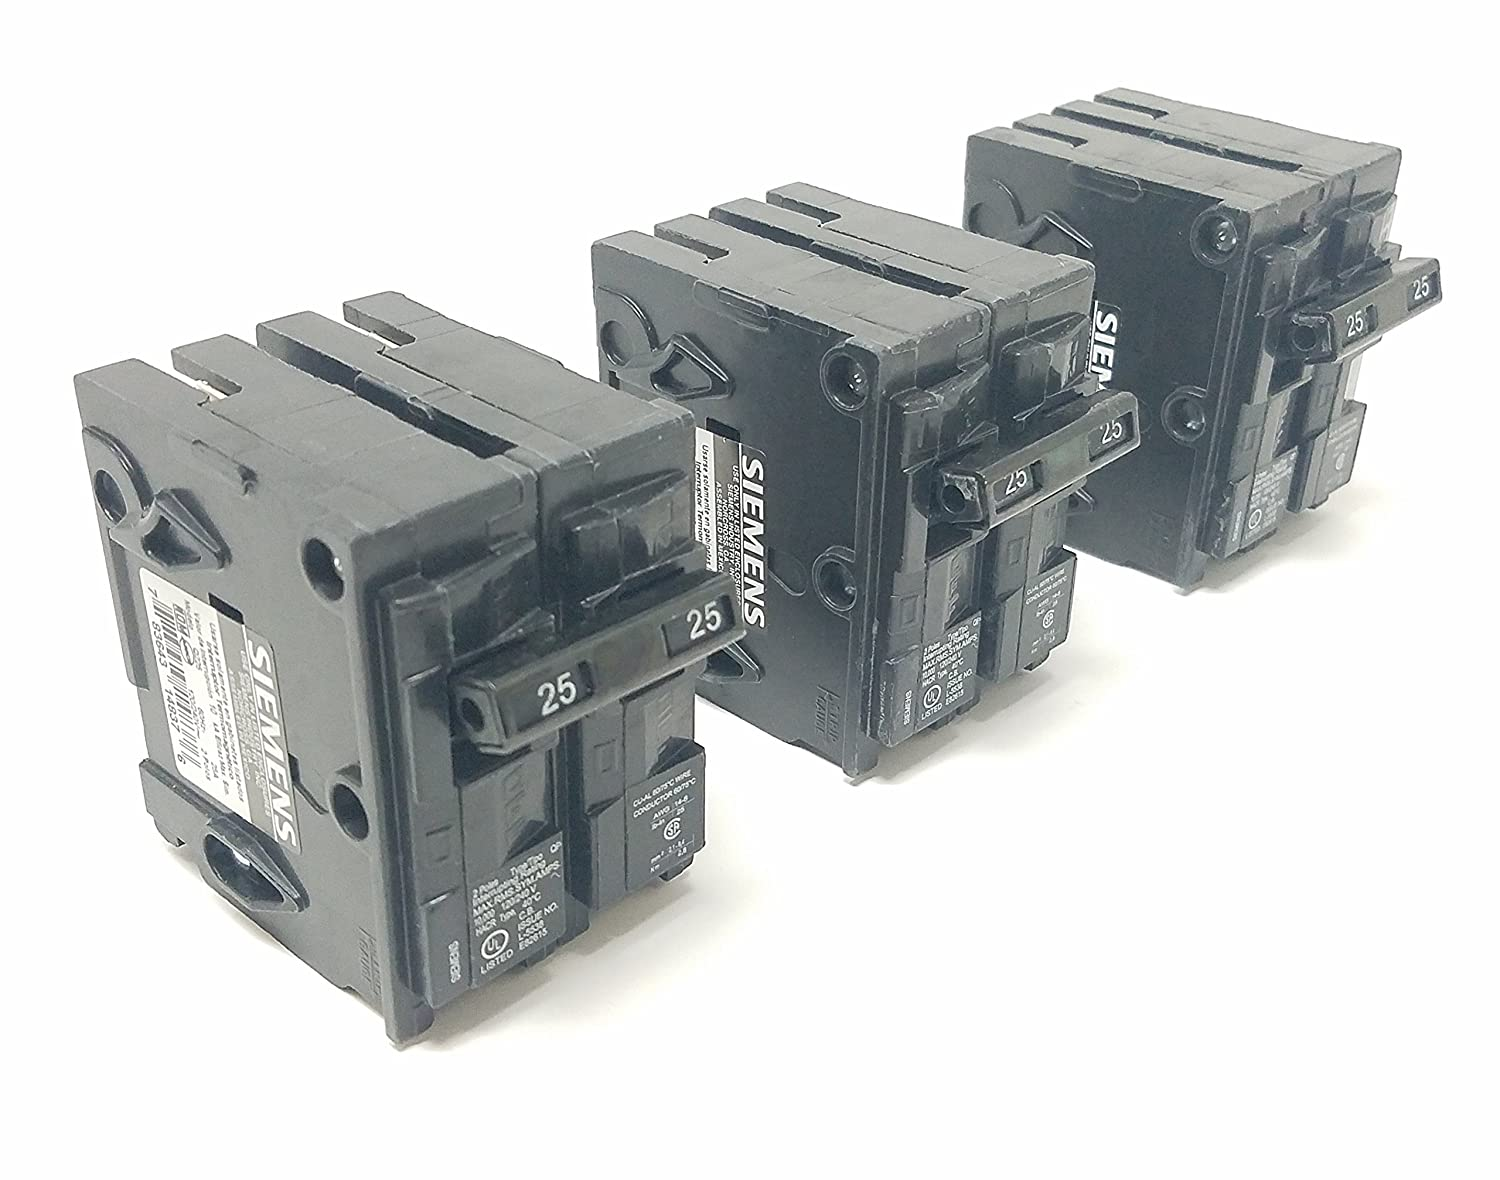 Q235 35-Amp Double Pole Type QP Circuit Breaker - - Amazon.com